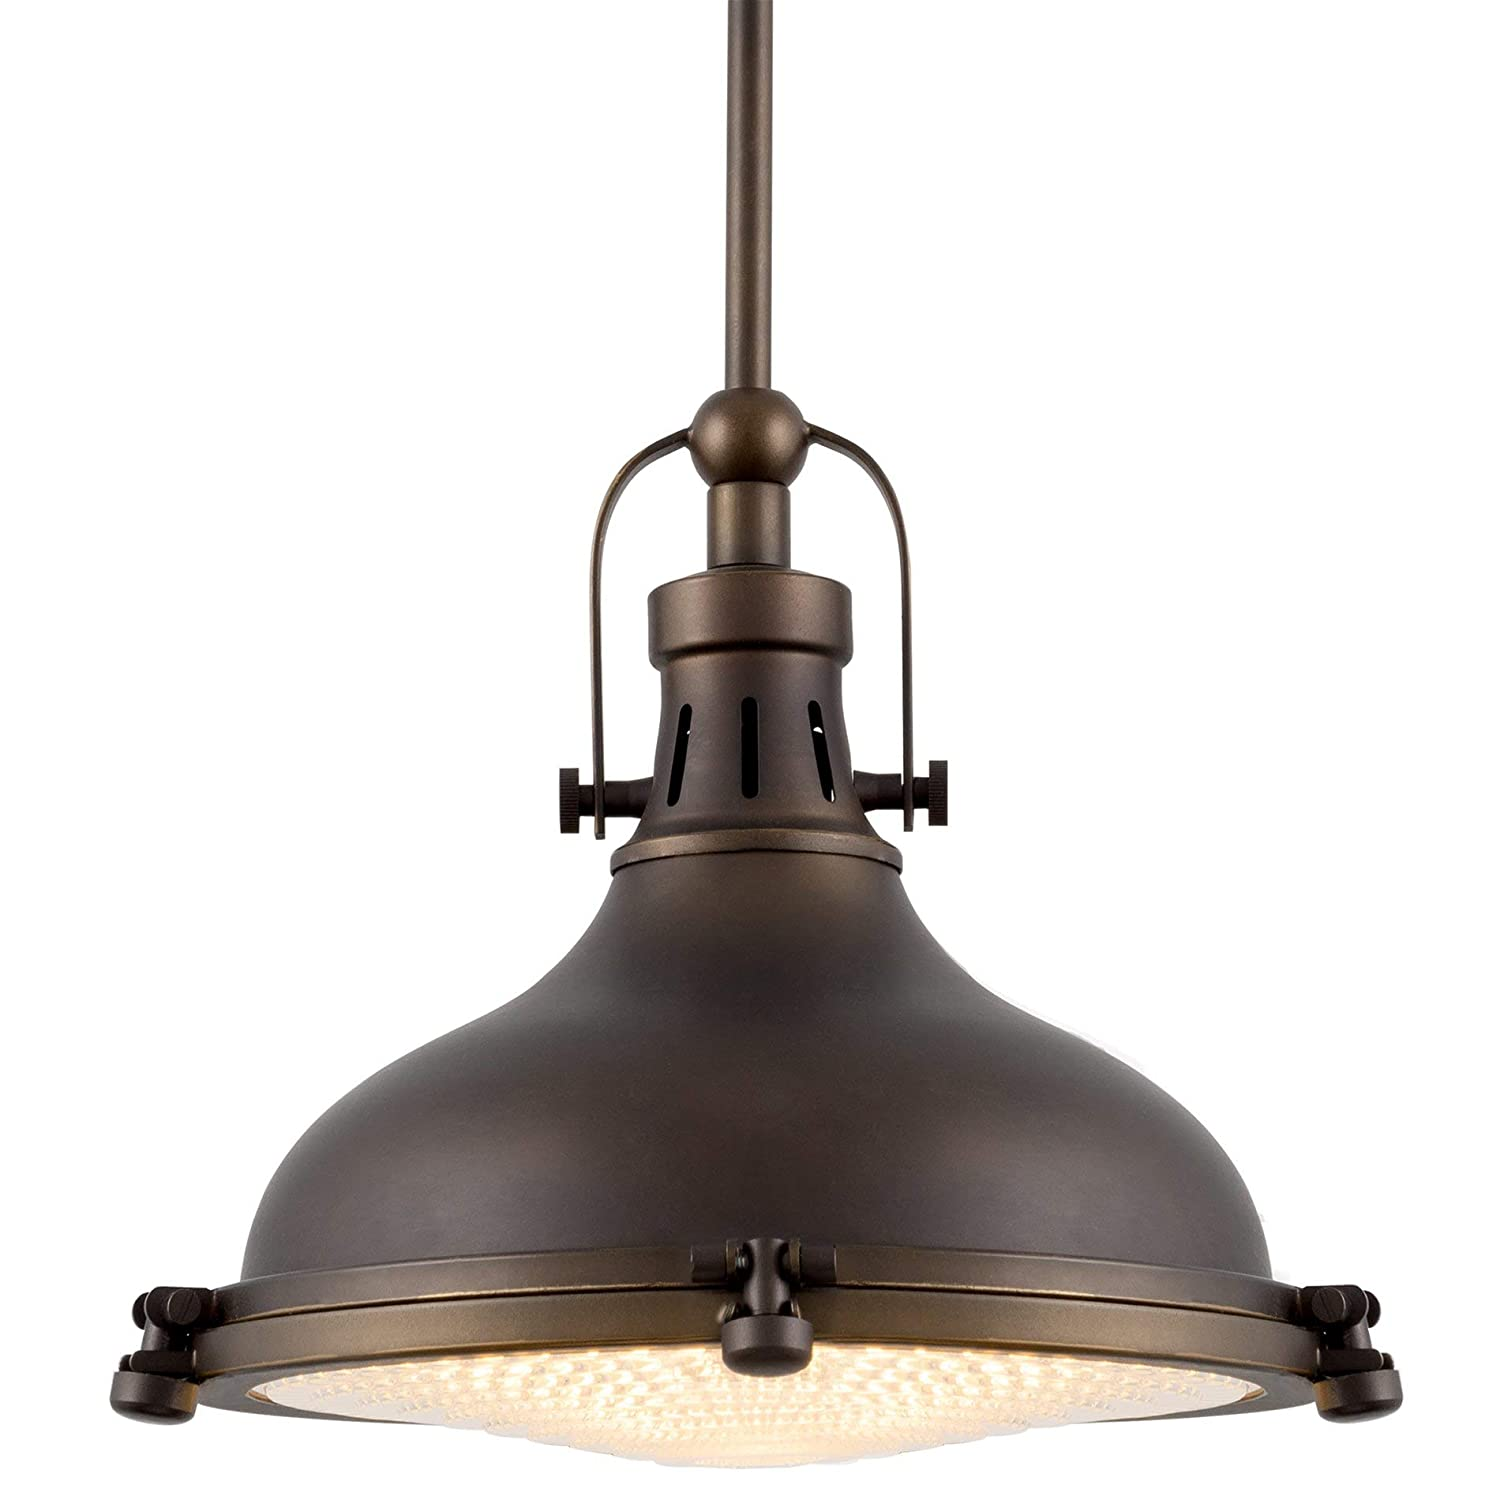 "Kira Home Beacon 11"" Industrial Farmhouse Pendant Light with Round Fresnel Glass Lens, Adjustable Hanging Height, Oil-Rubbed Bronze Finish"